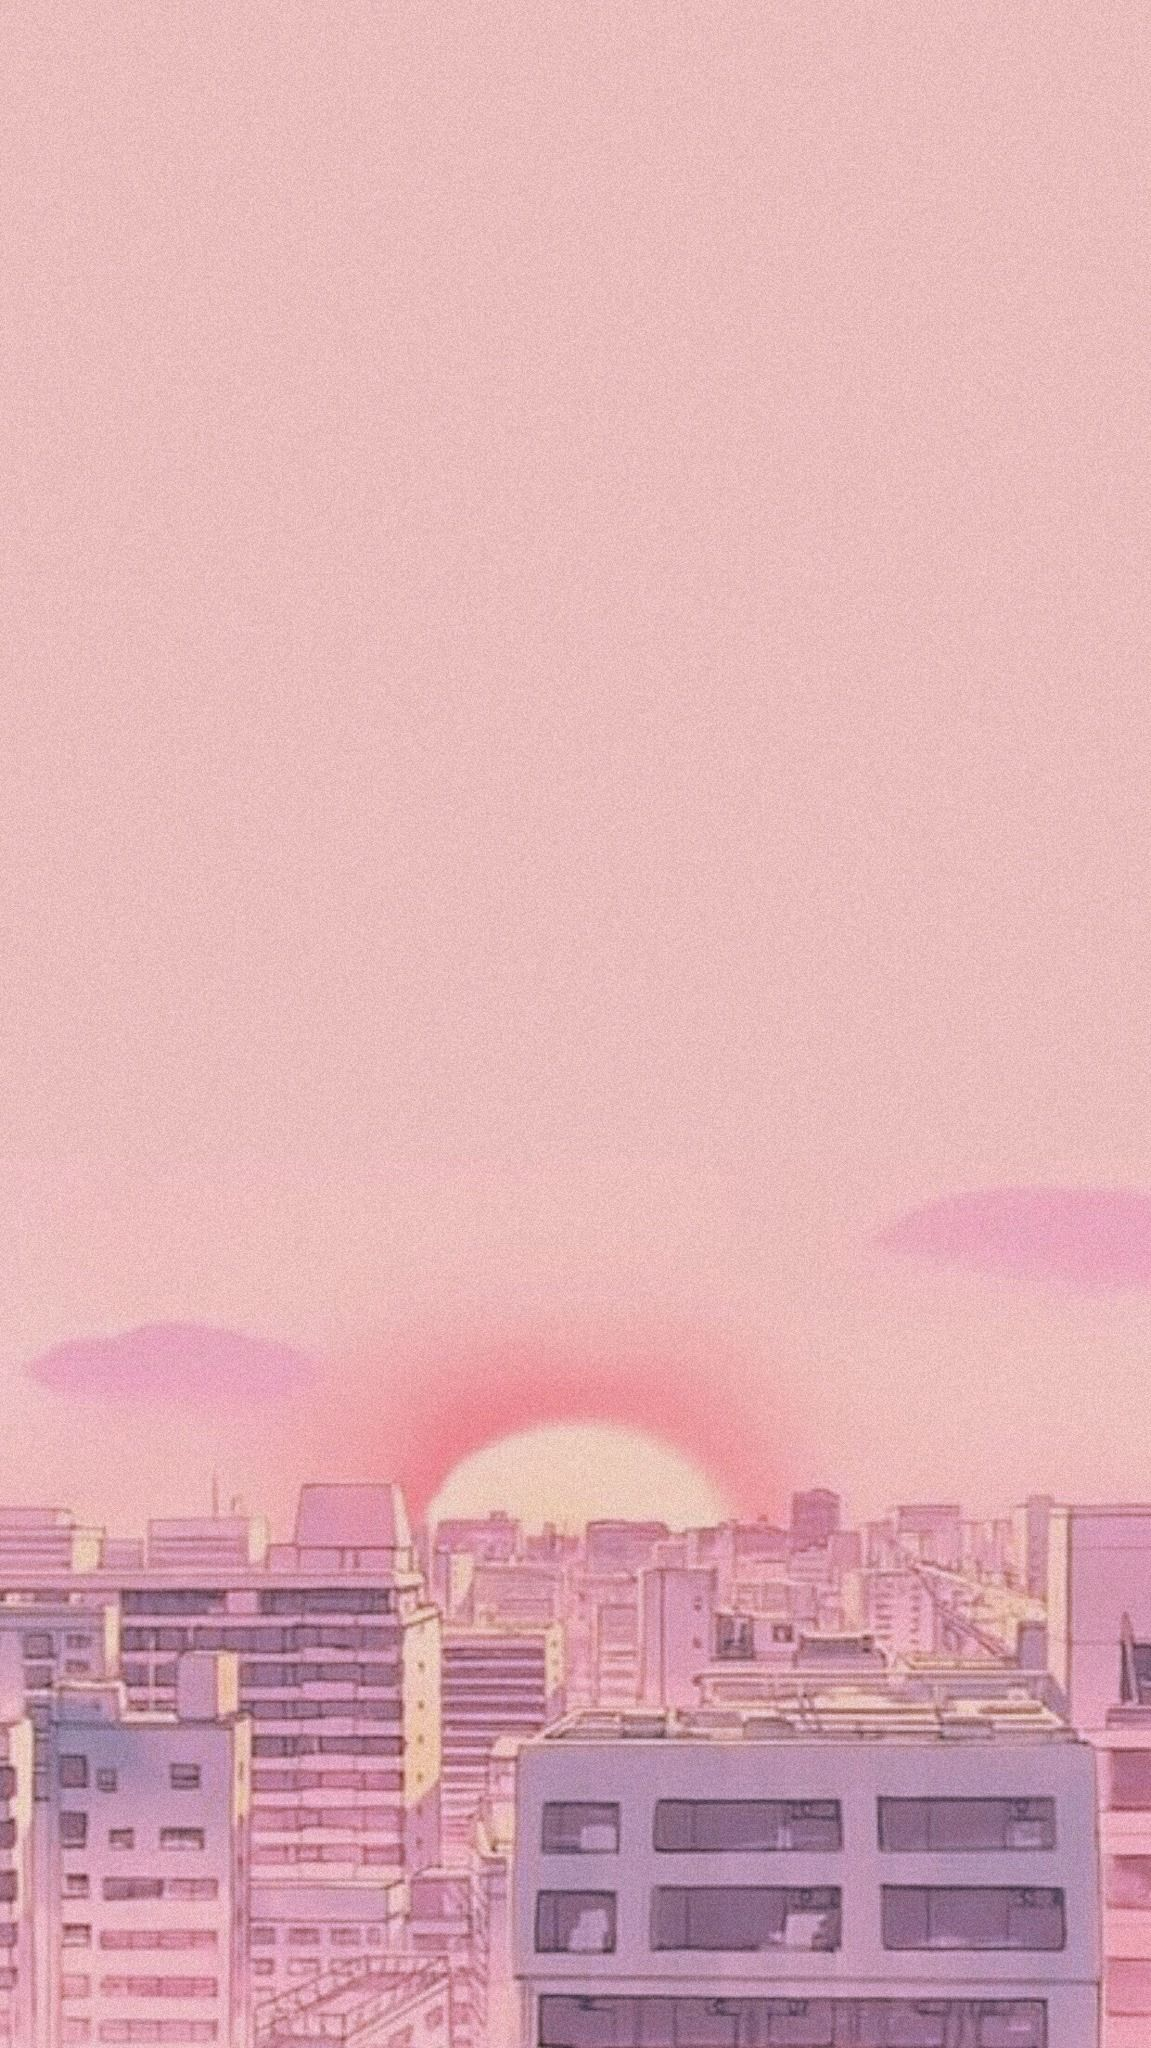 Pink Aesthetic 90s Anime Wallpapers Top Free Pink Aesthetic 90s Anime Backgrounds Wallpaperaccess